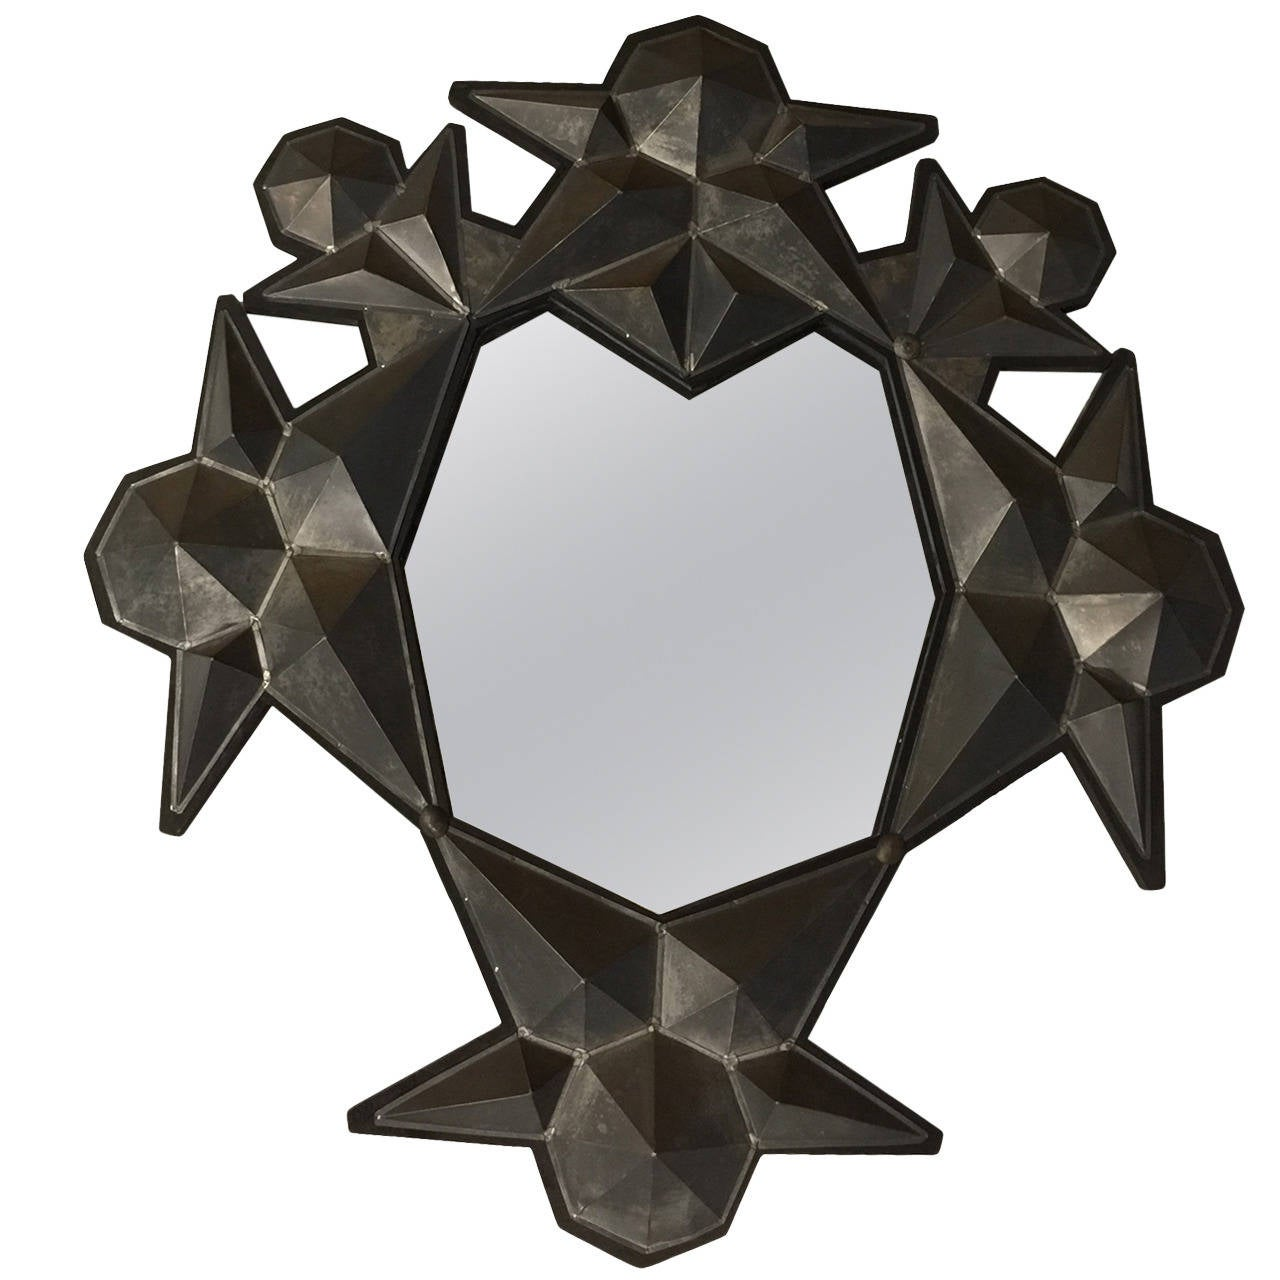 Three-Dimensional Star Cluster Mirror, 1980s 1